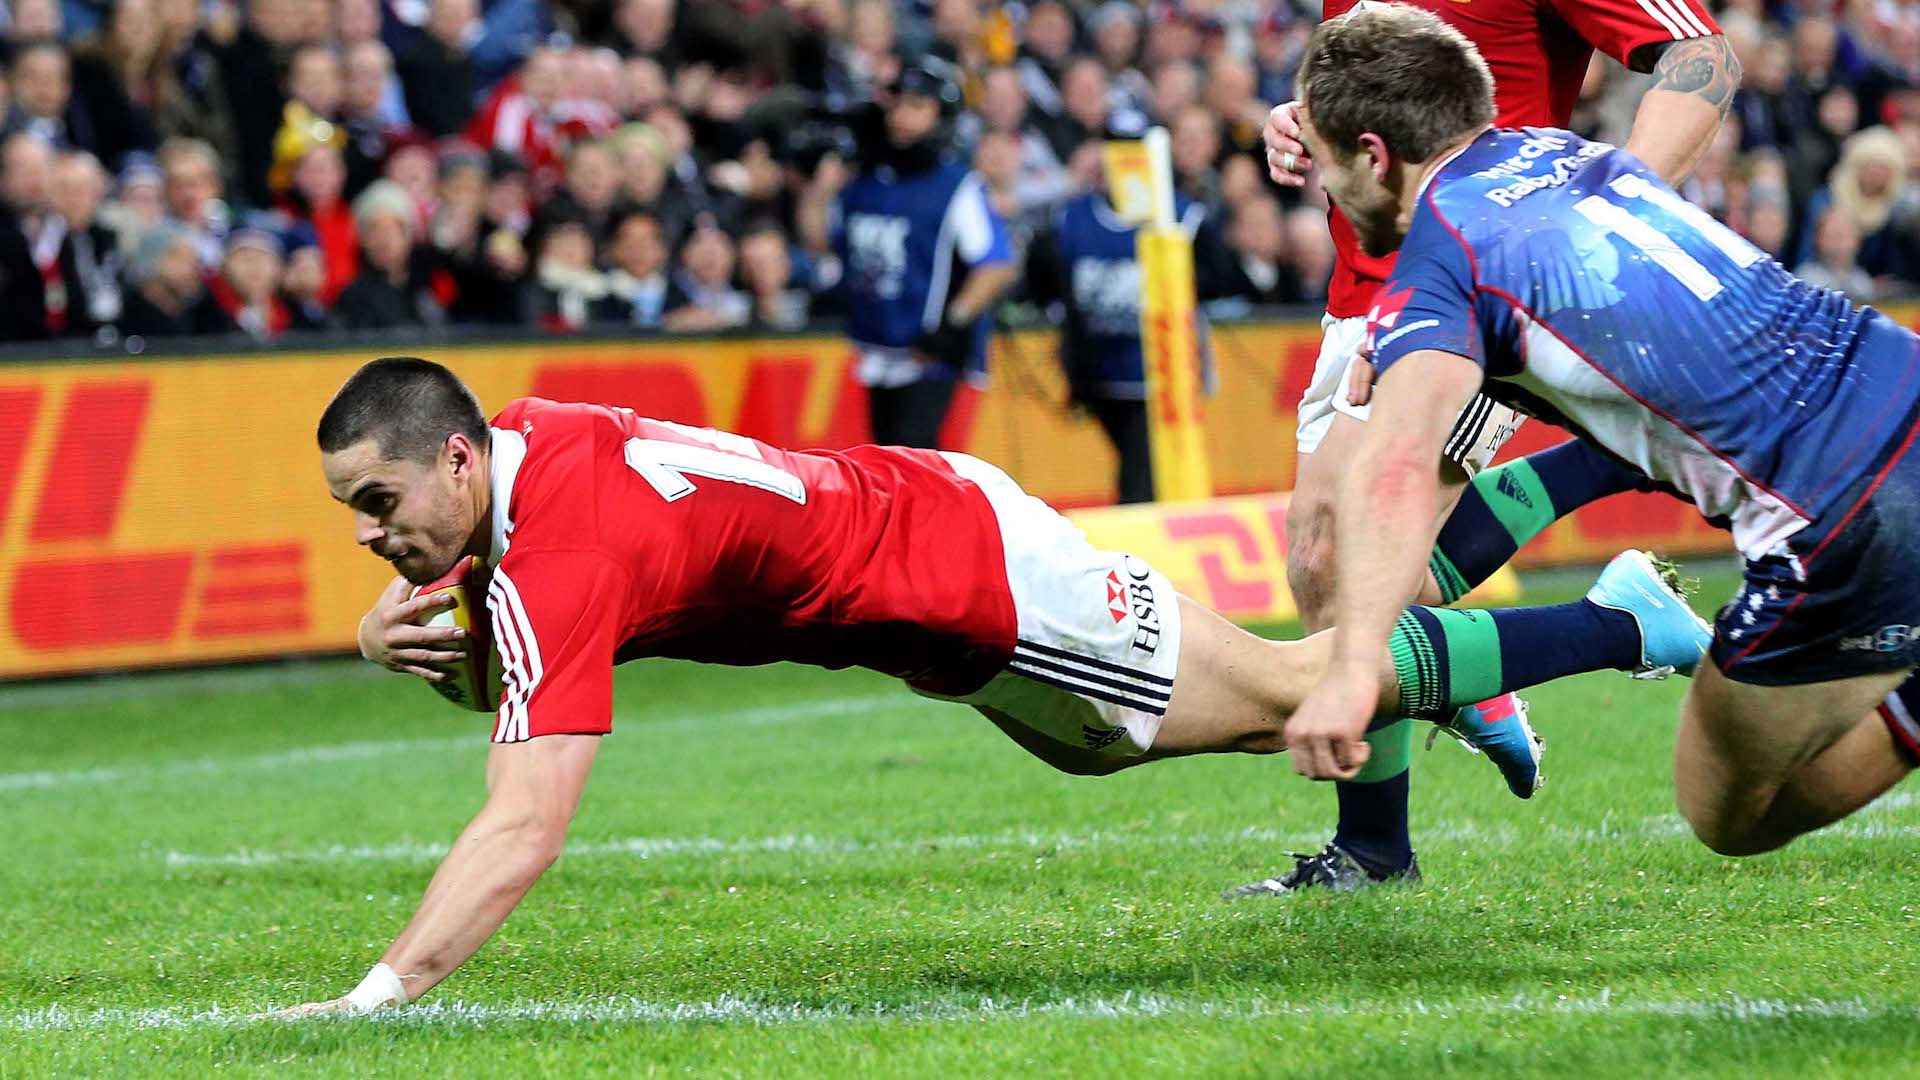 Lions bolters include Sean Maitland